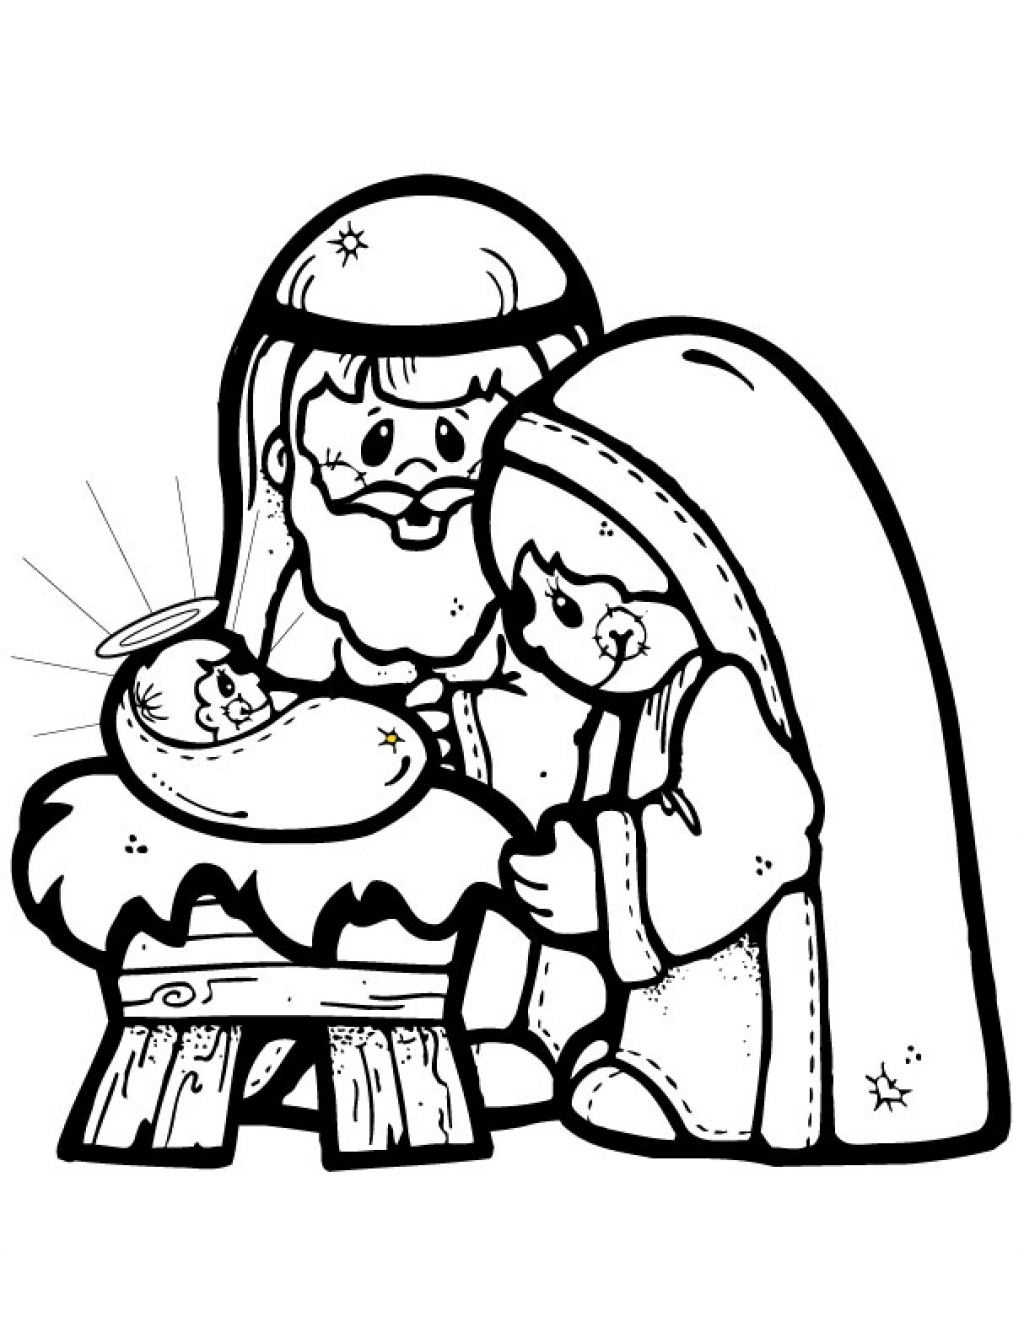 Nativity Coloring Pages | Free Download Best Nativity Coloring Pages - Free Printable Christmas Story Coloring Pages